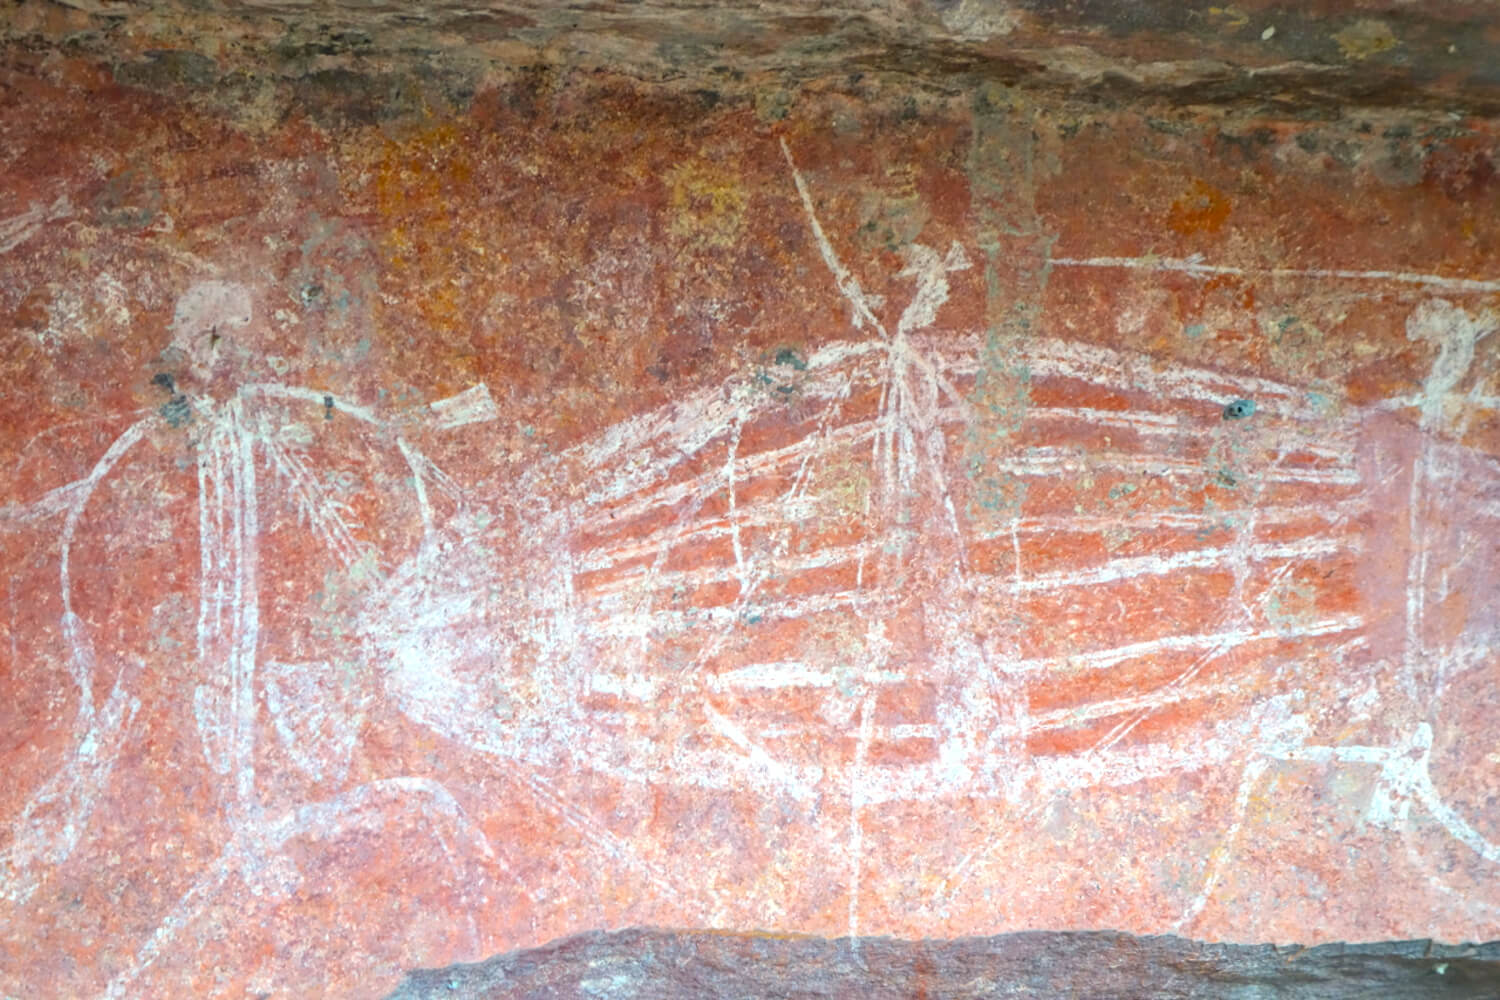 Aboriginal Rock Art - Ubirr - Image credit: Peter Boer